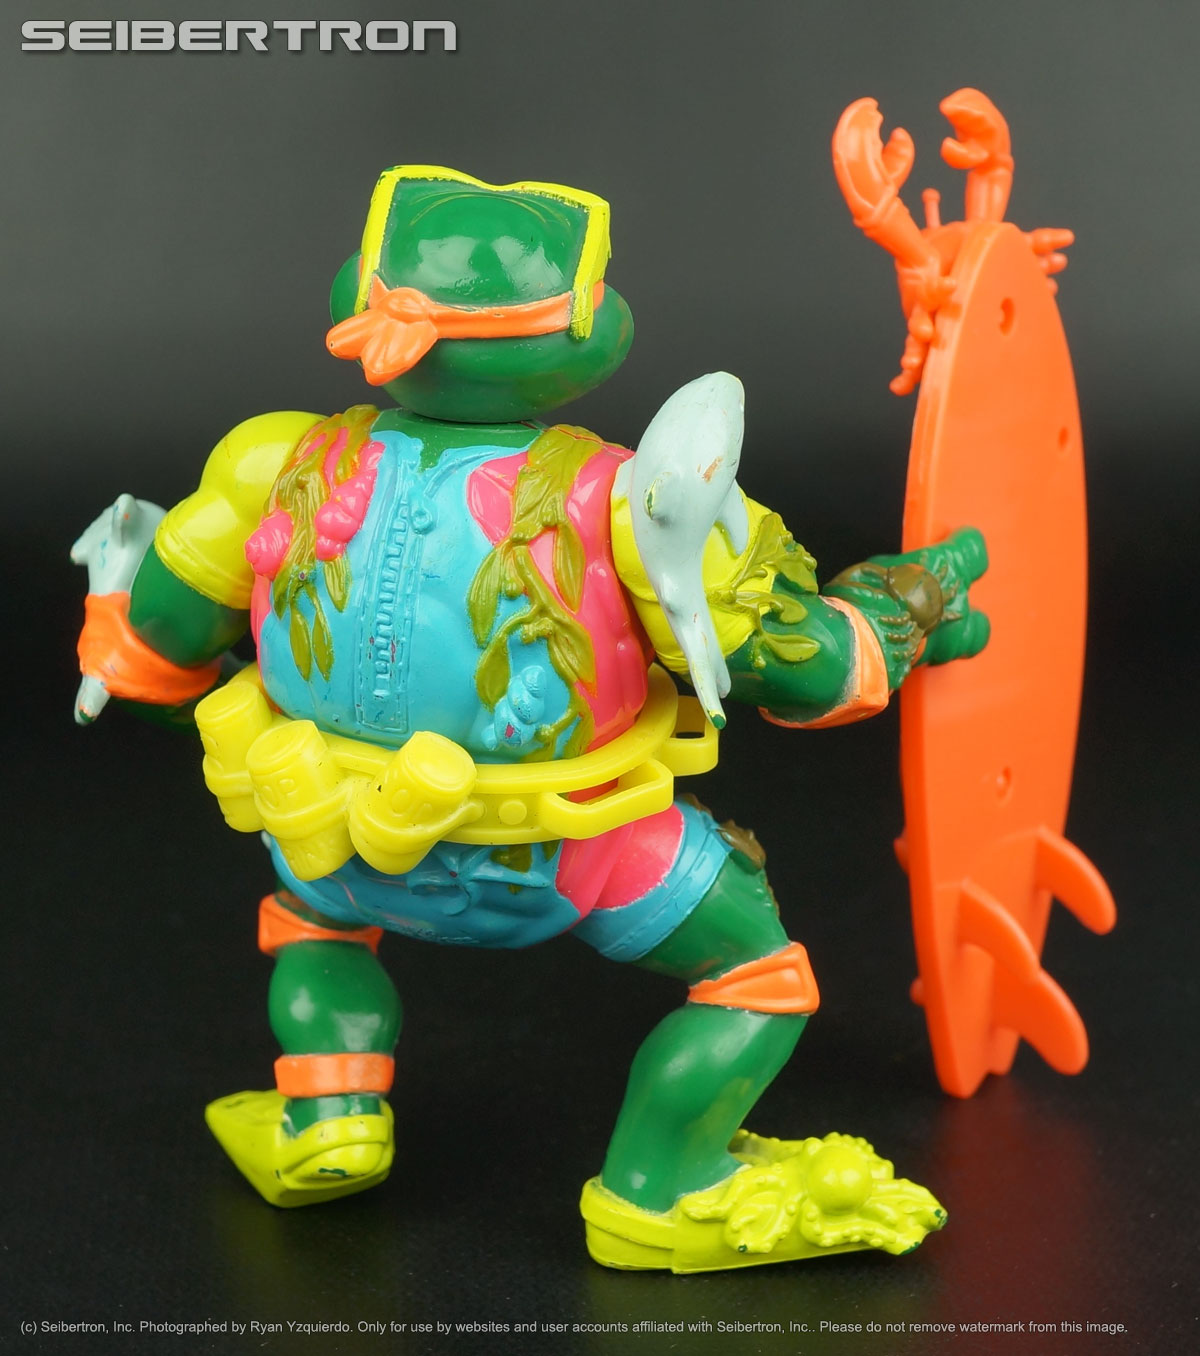 Teenage Mutant Ninja Turtles and Transformers listings from Seibertron.com: MIKE SEWER SURFER Teenage Mutant Ninja Turtles 100% complete vintage 1989 TMNT